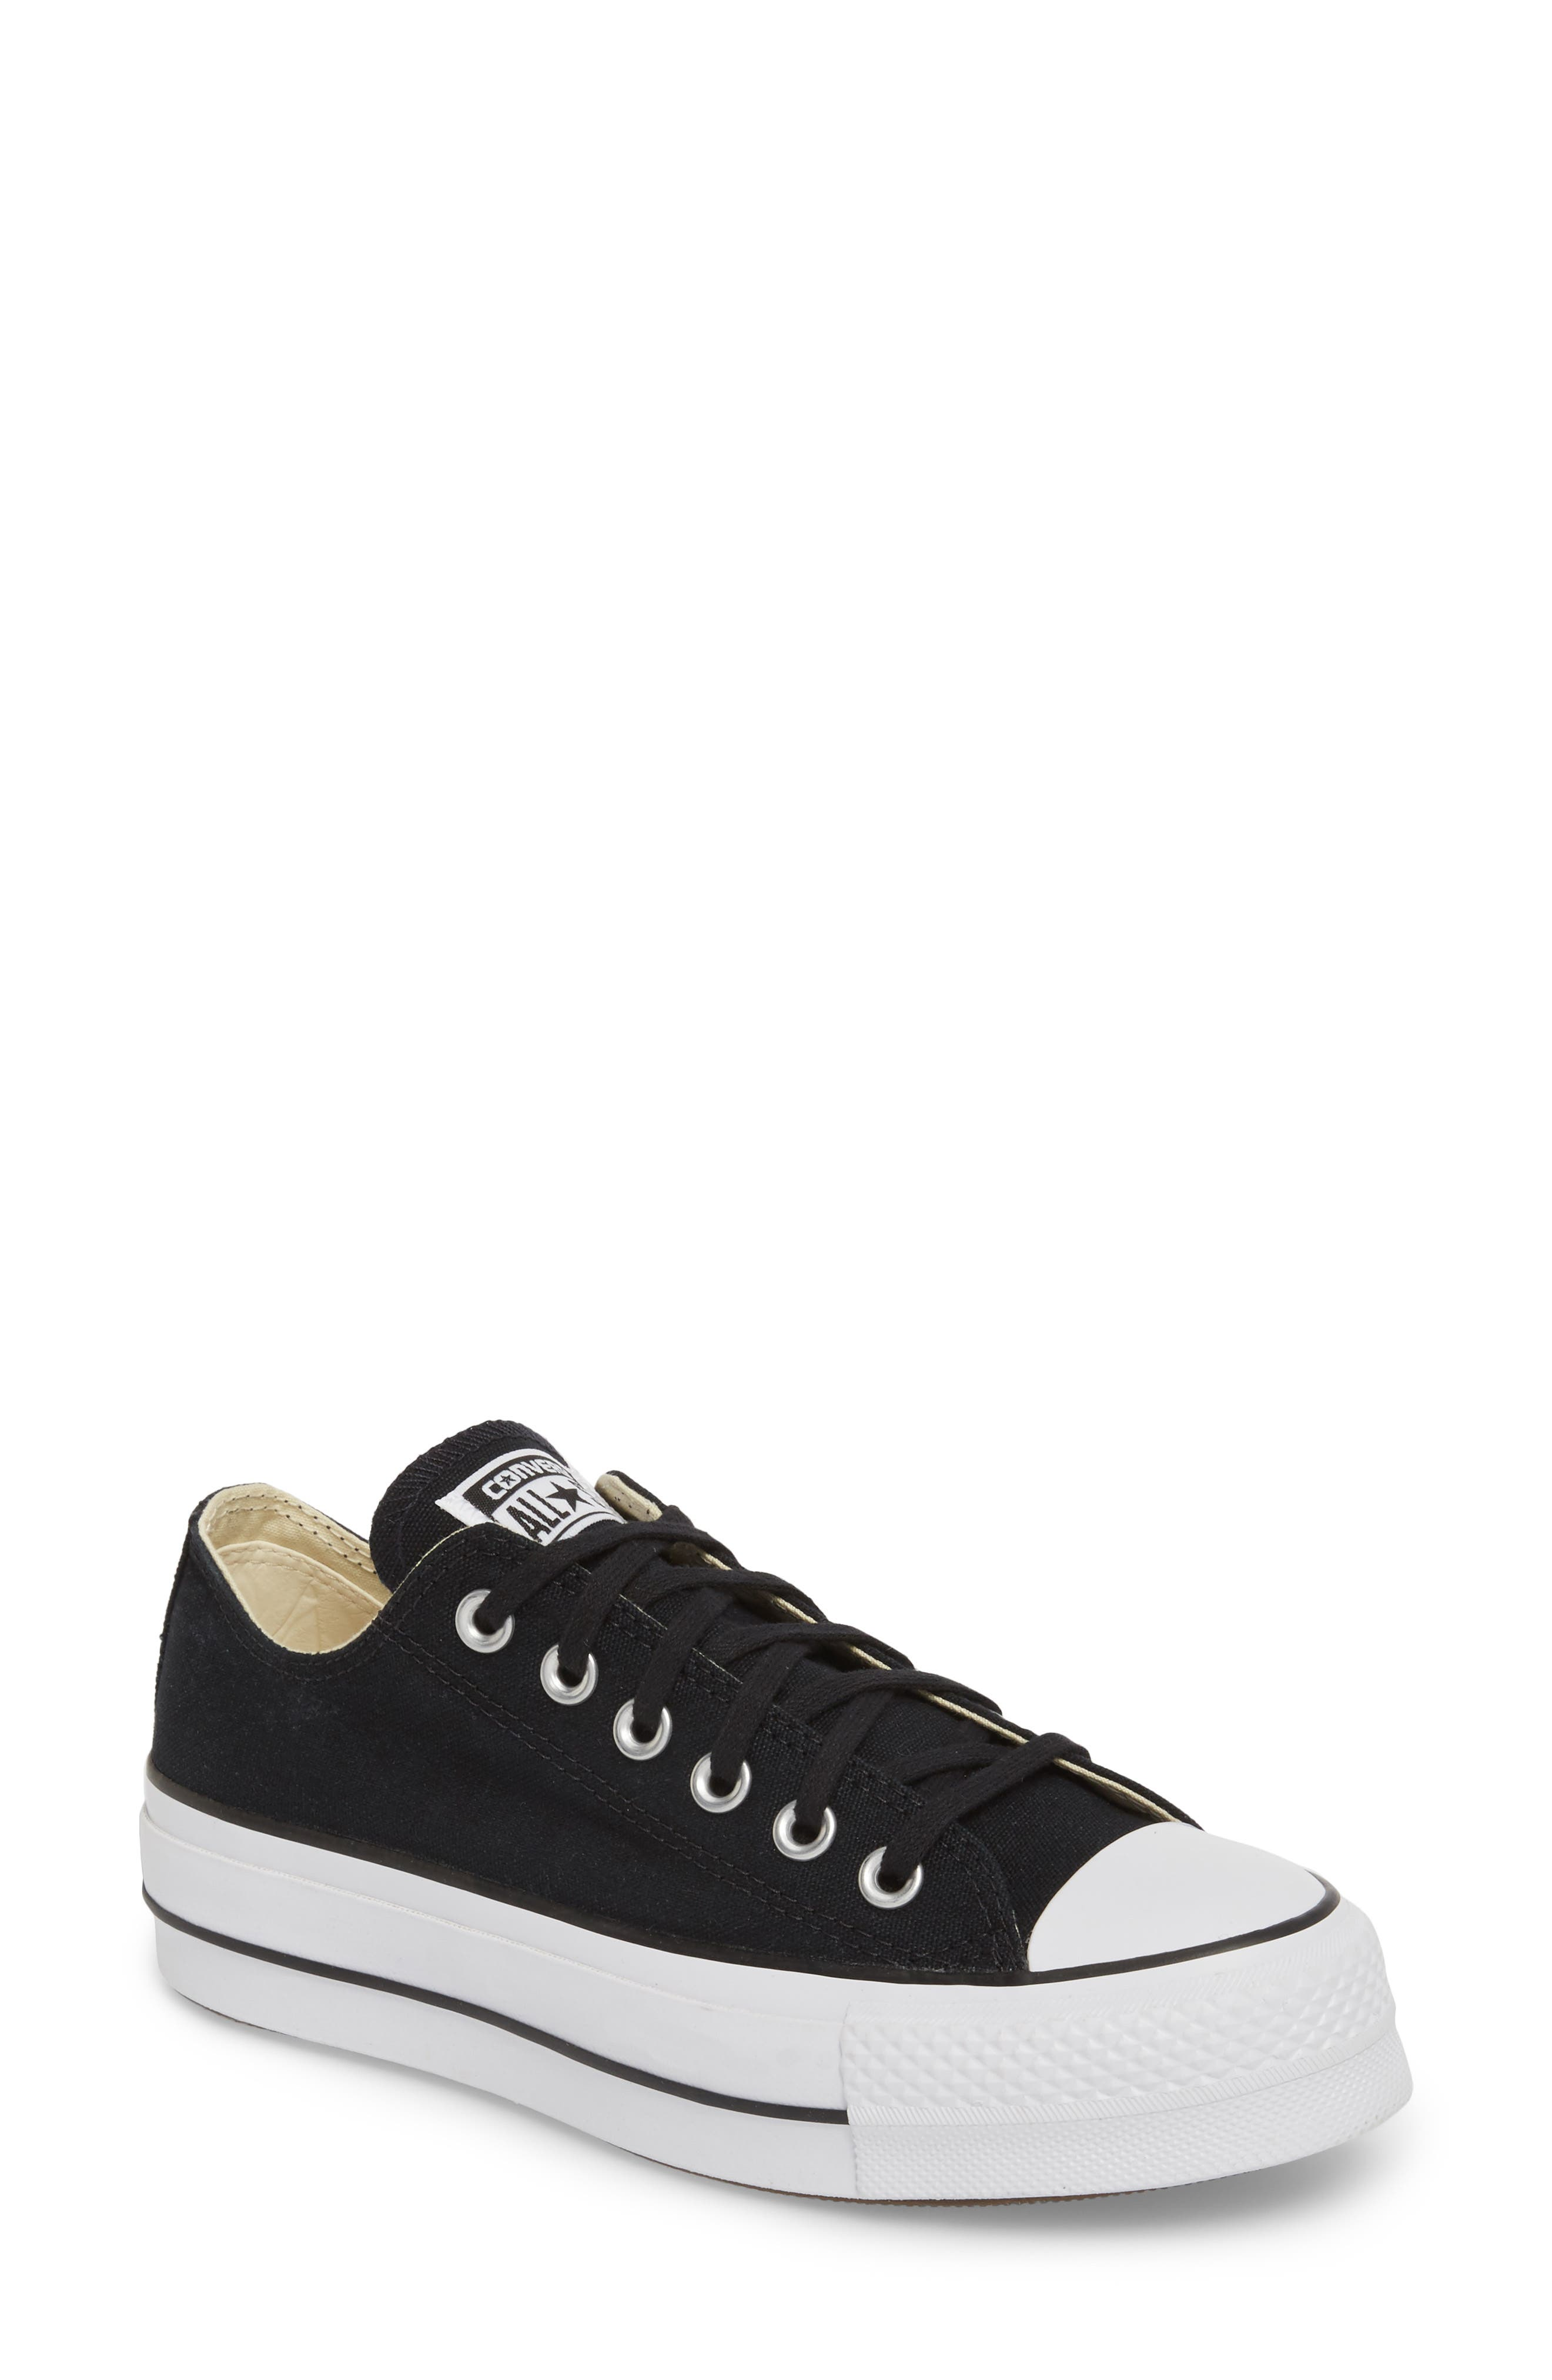 Chuck Taylor<sup>®</sup> All Star<sup>®</sup> Platform Sneaker,                             Main thumbnail 1, color,                             BLACK/ WHITE/ WHITE